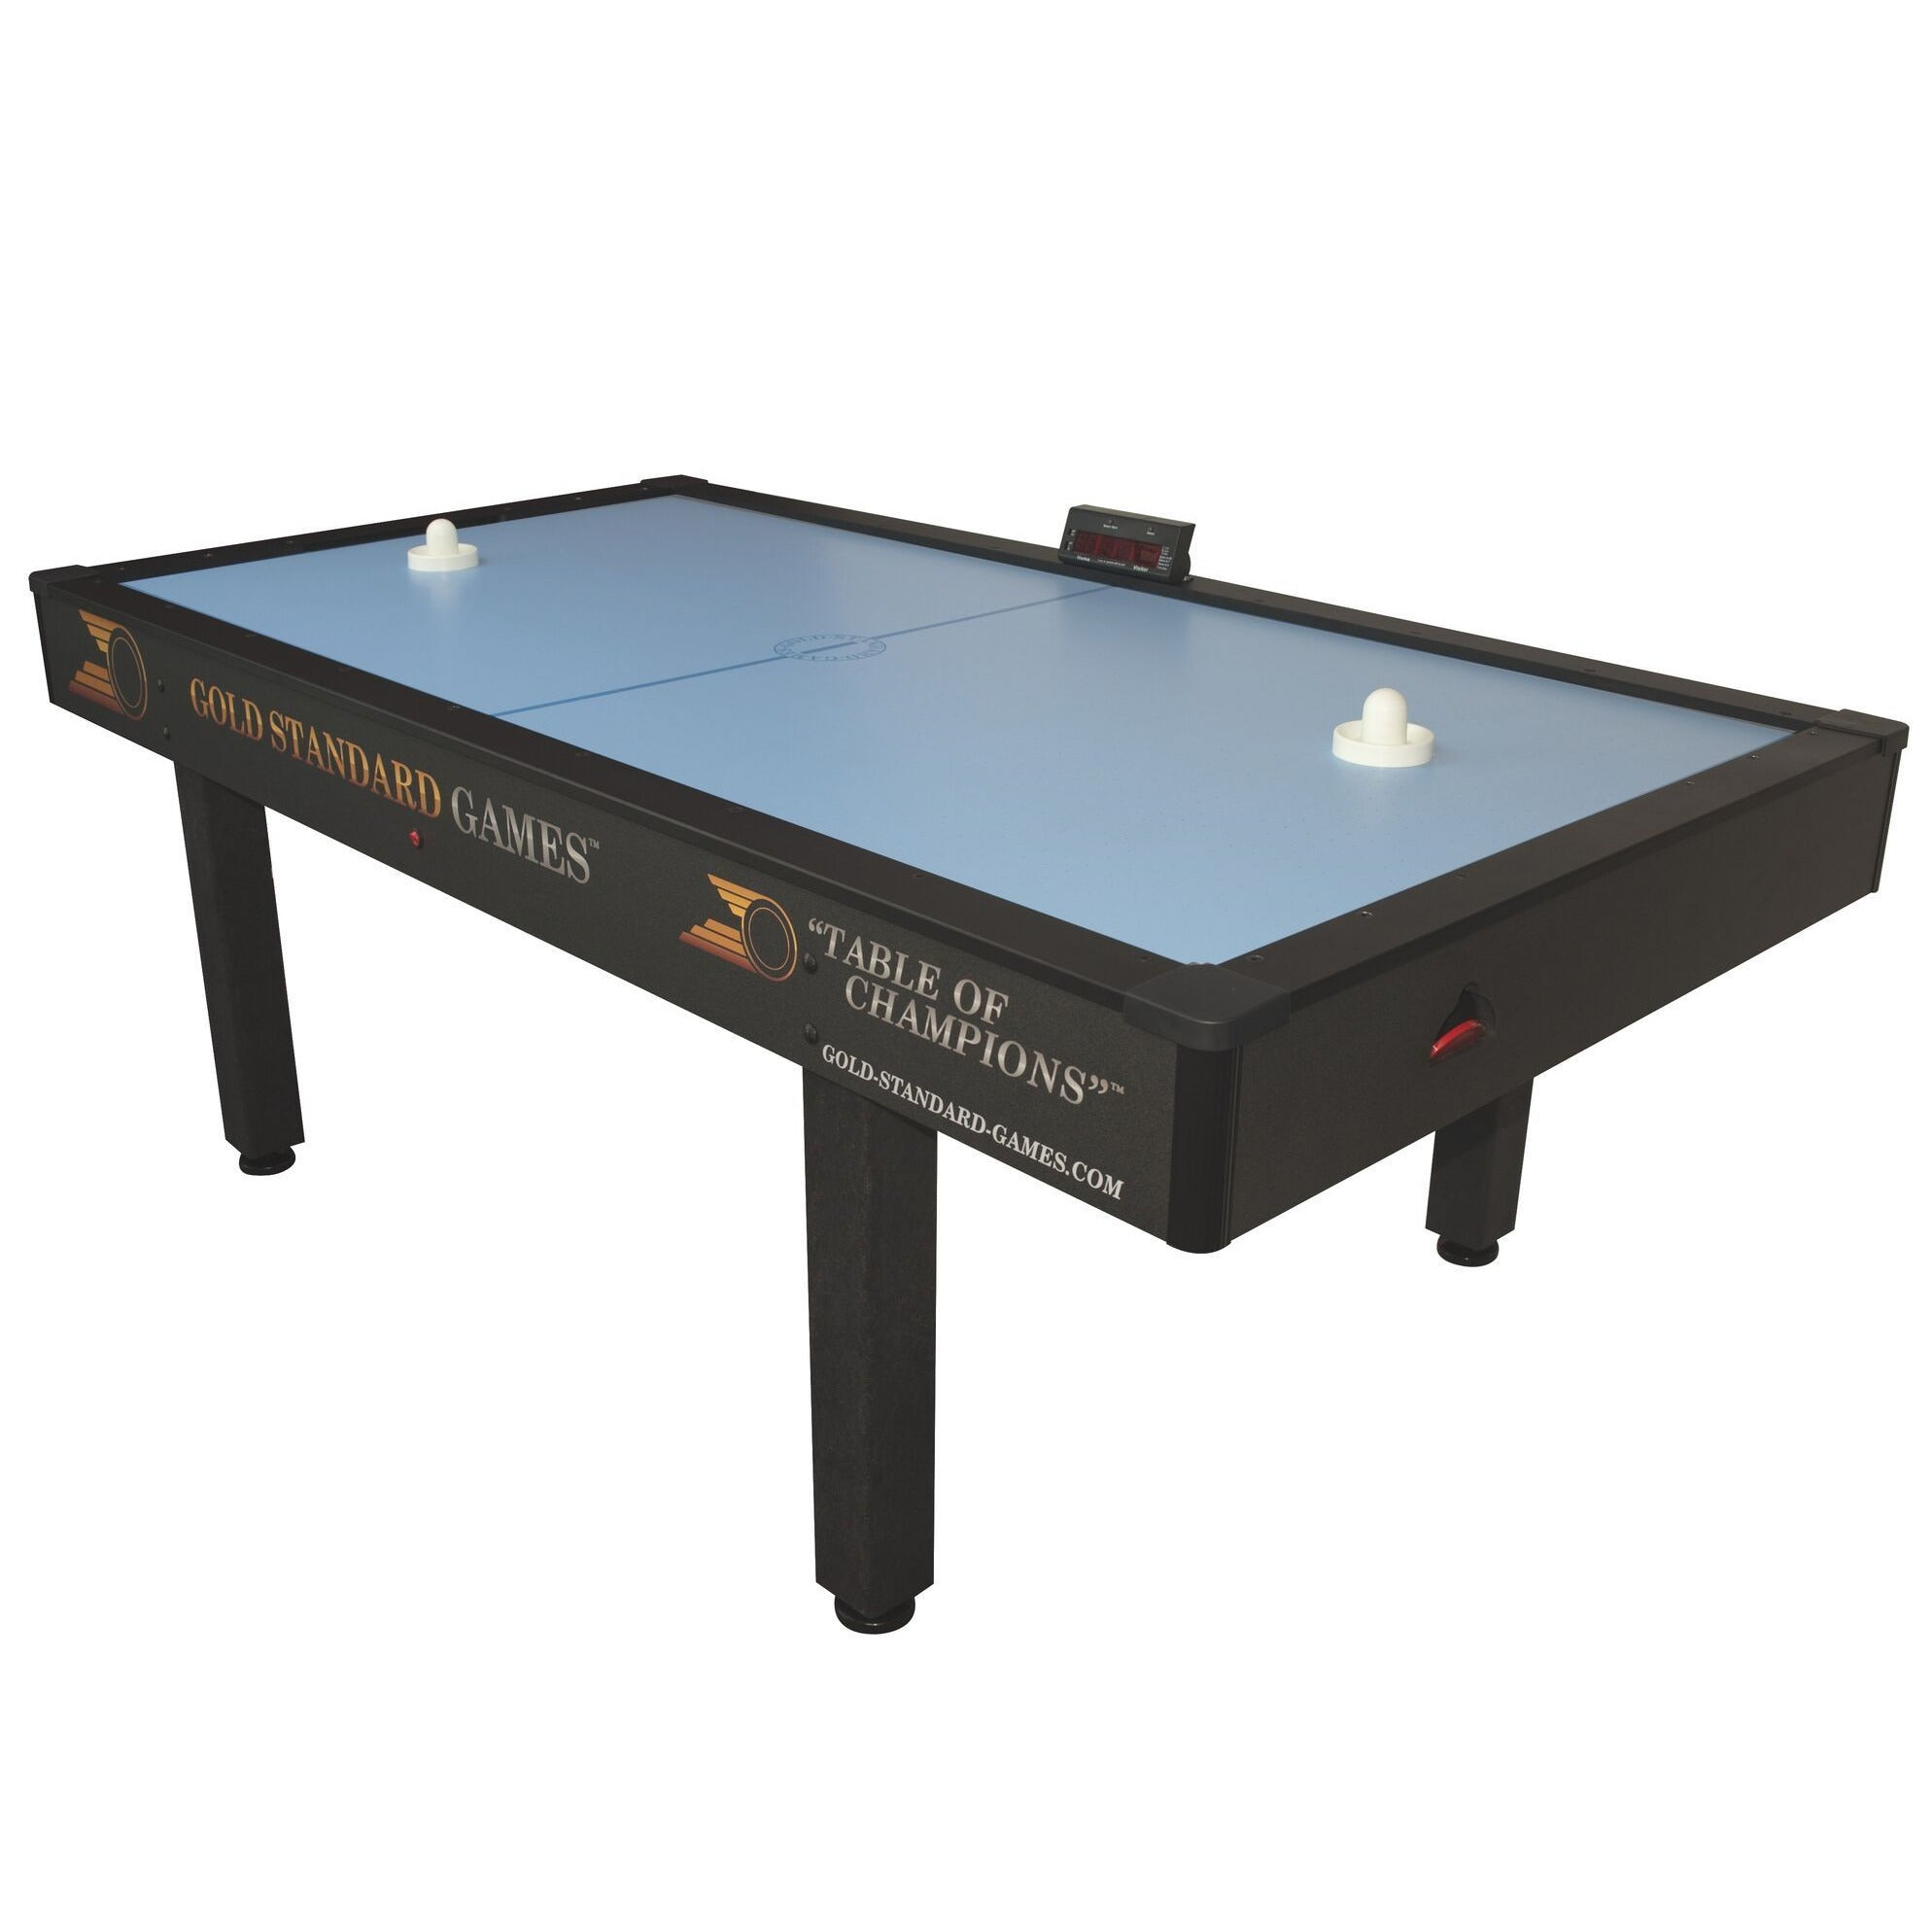 Gold Standard Games Home Pro 7ft Air Hockey Table - Gaming Blaze